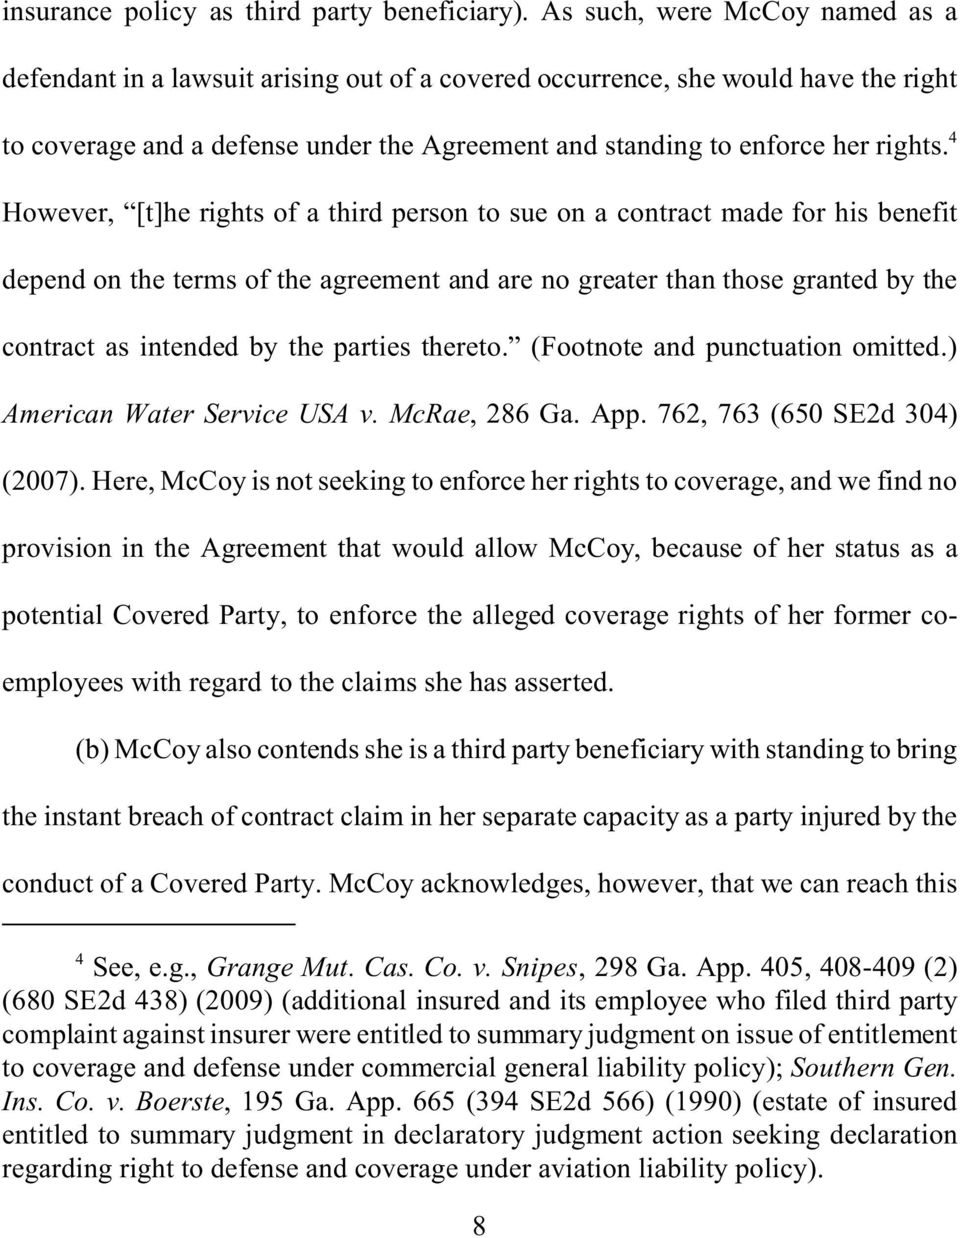 4 However, [t]he rights of a third person to sue on a contract made for his benefit depend on the terms of the agreement and are no greater than those granted by the contract as intended by the